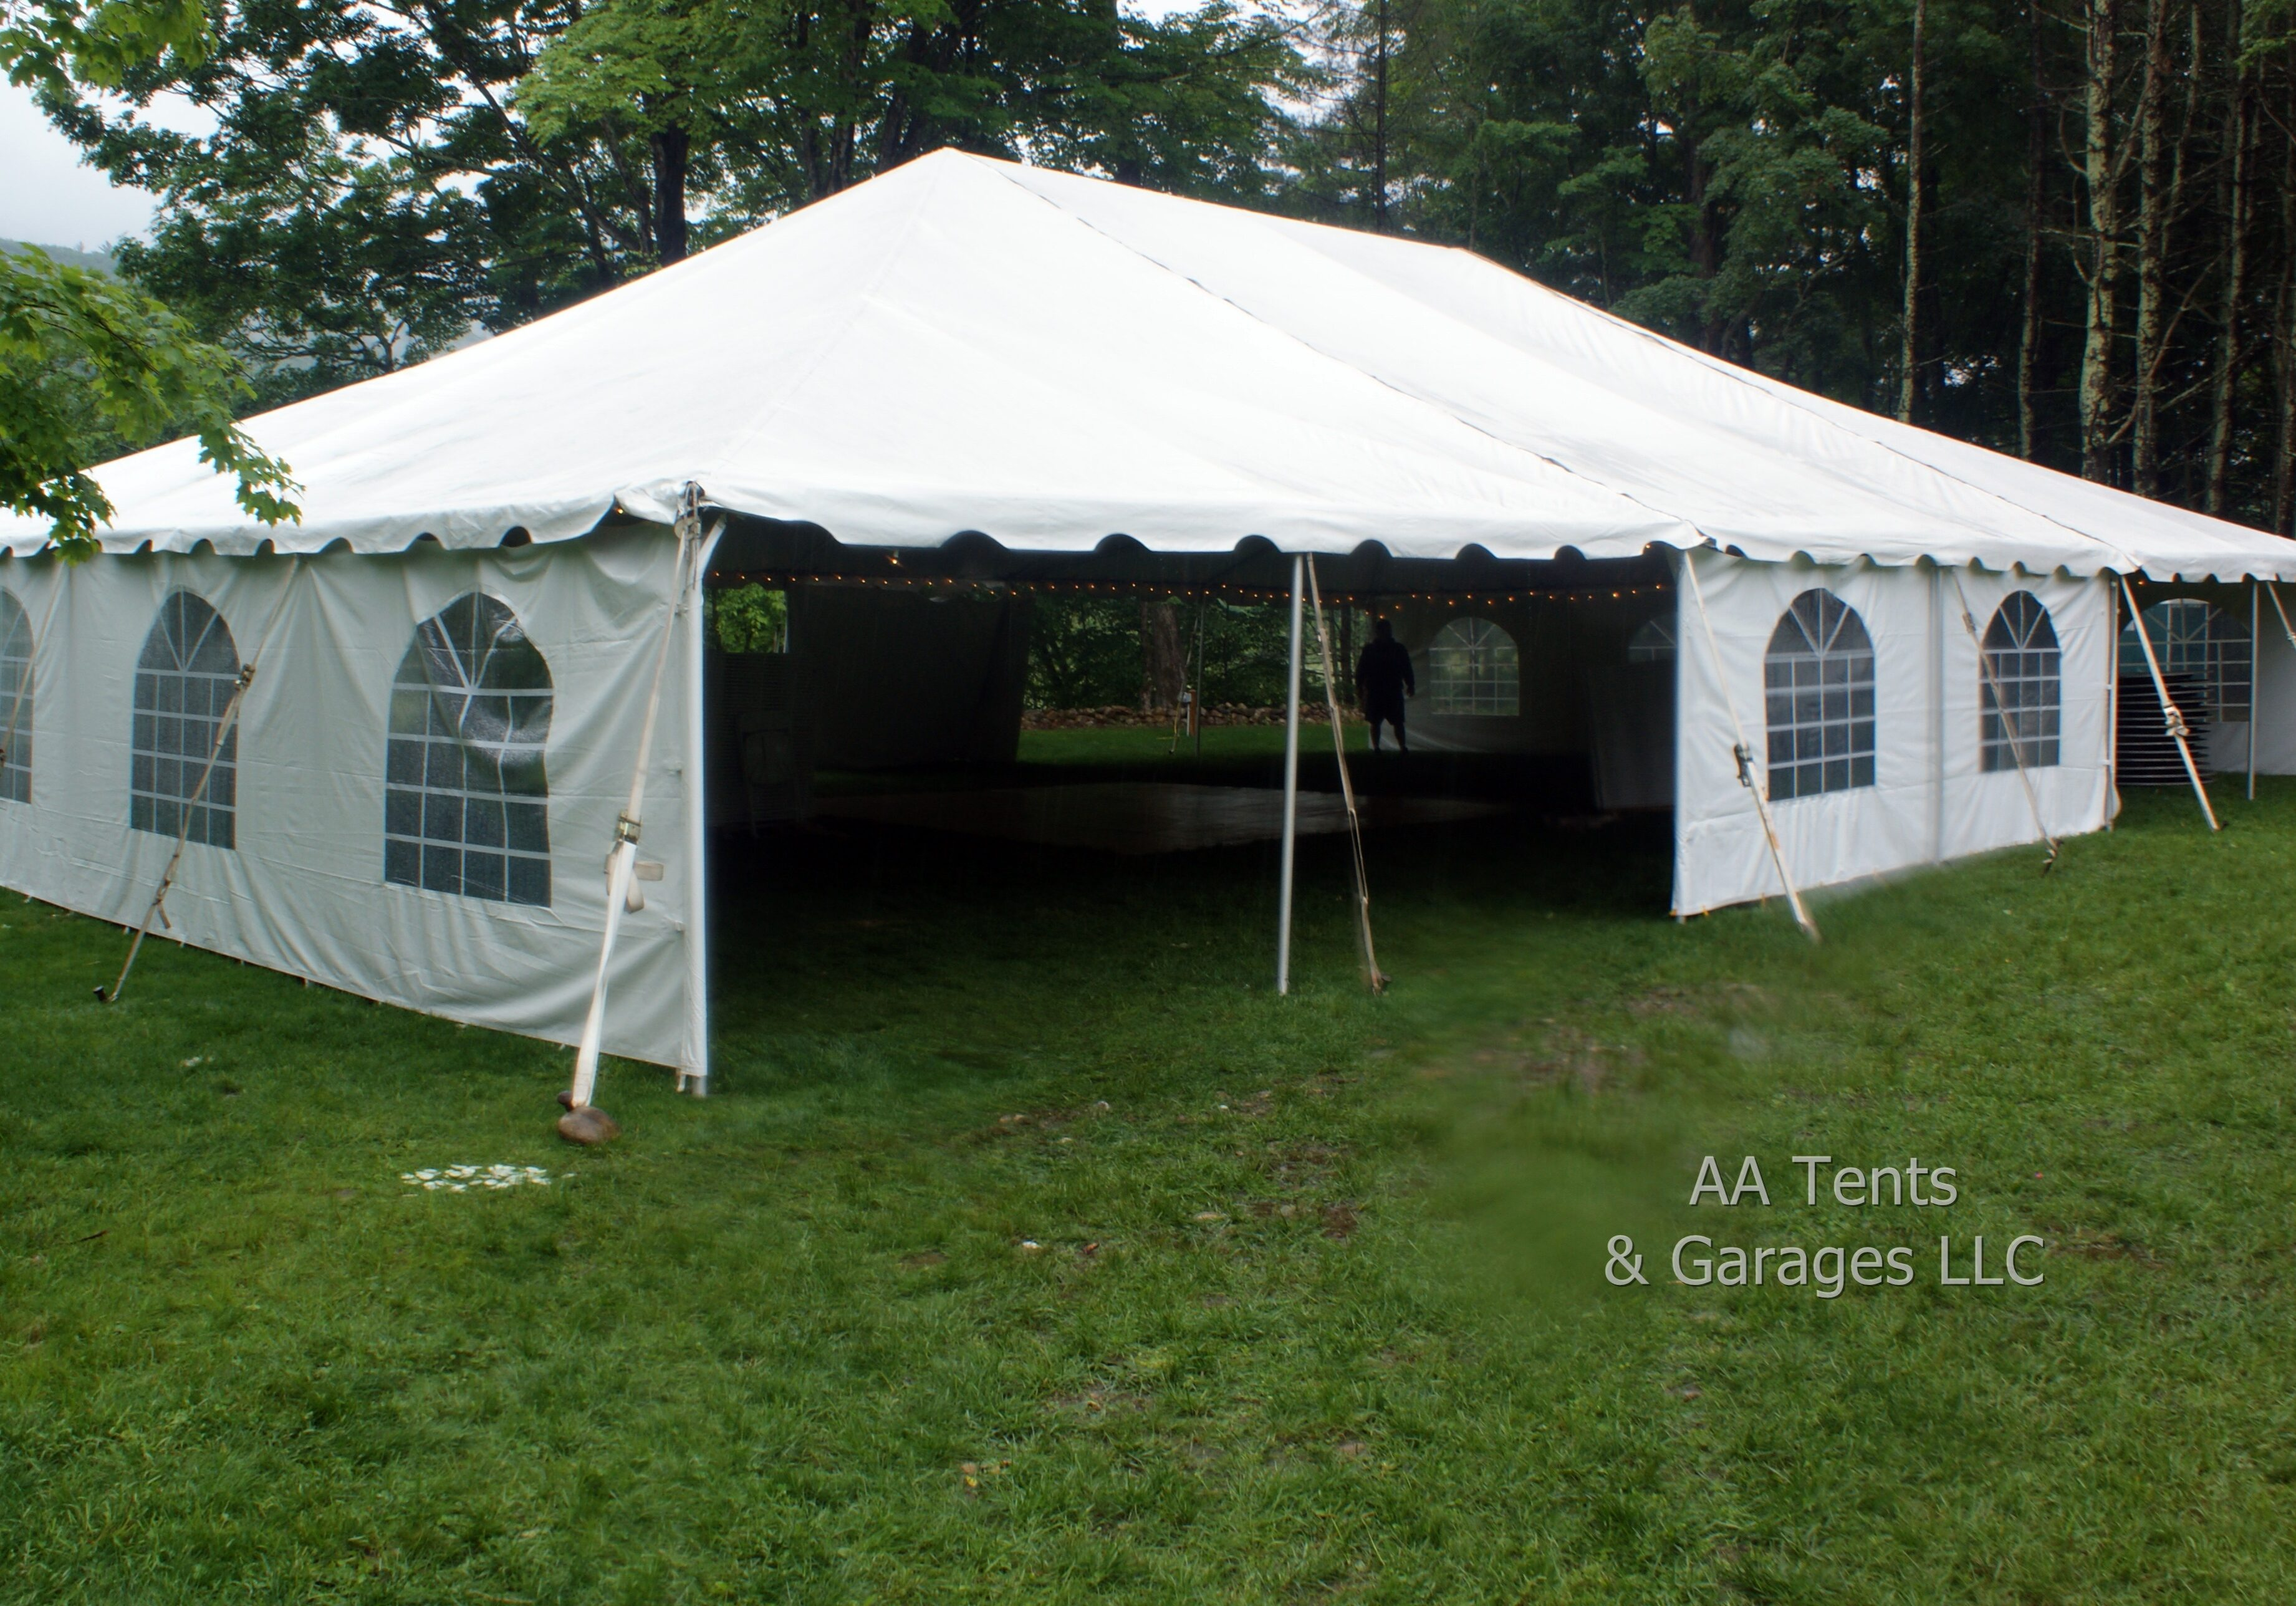 40' x 60' Frame Tent With Window Sidewalls